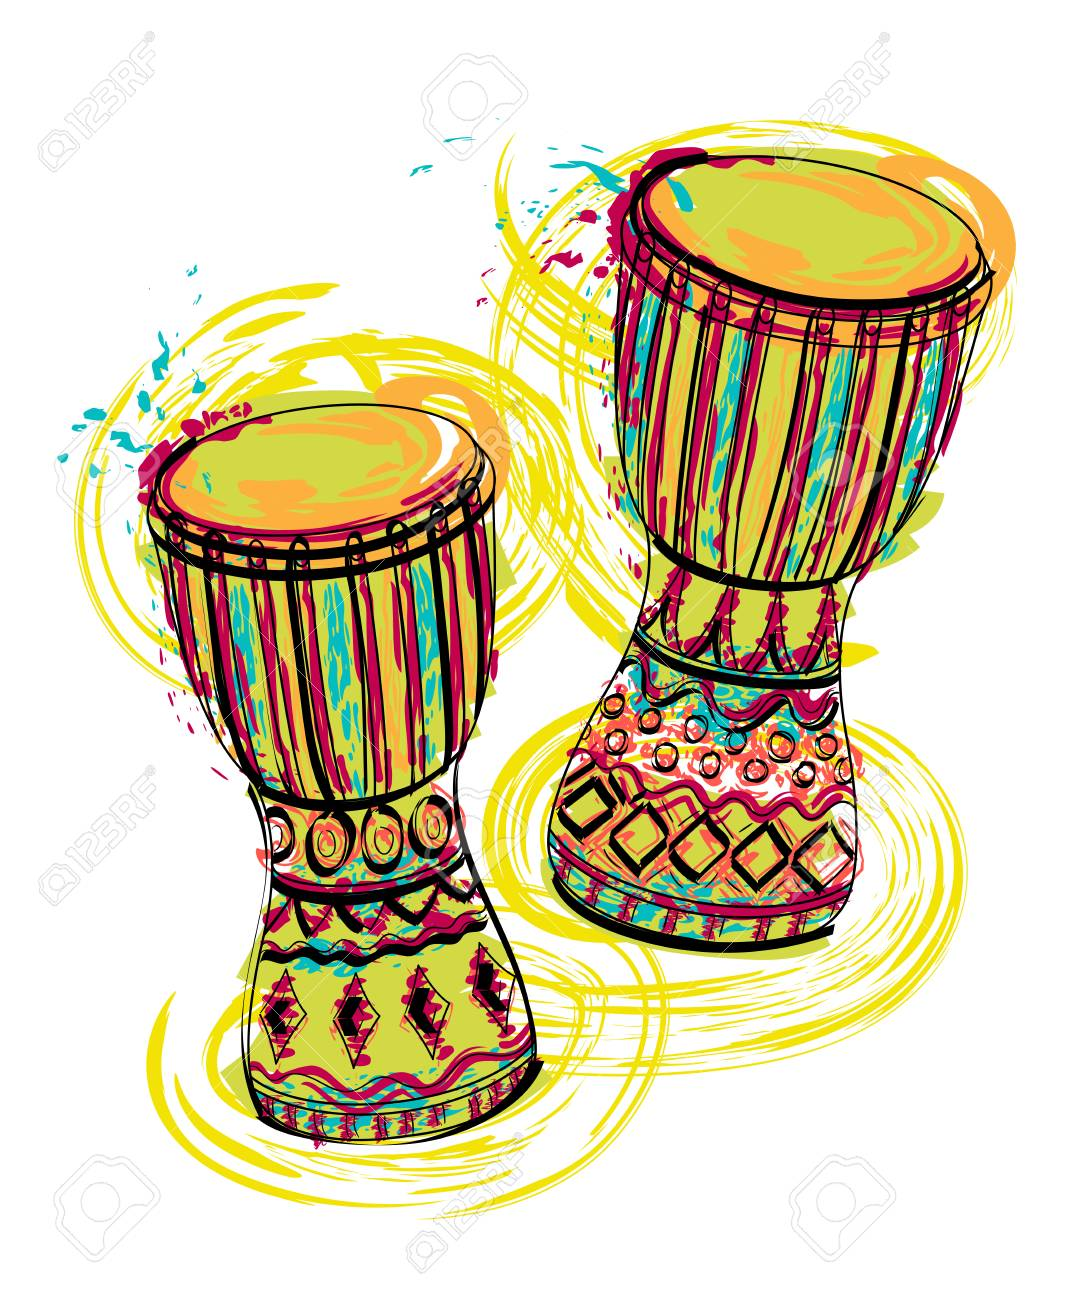 Drums tam tam with splashes in watercolor style. Colorful hand drawn vector illustration - 96335636